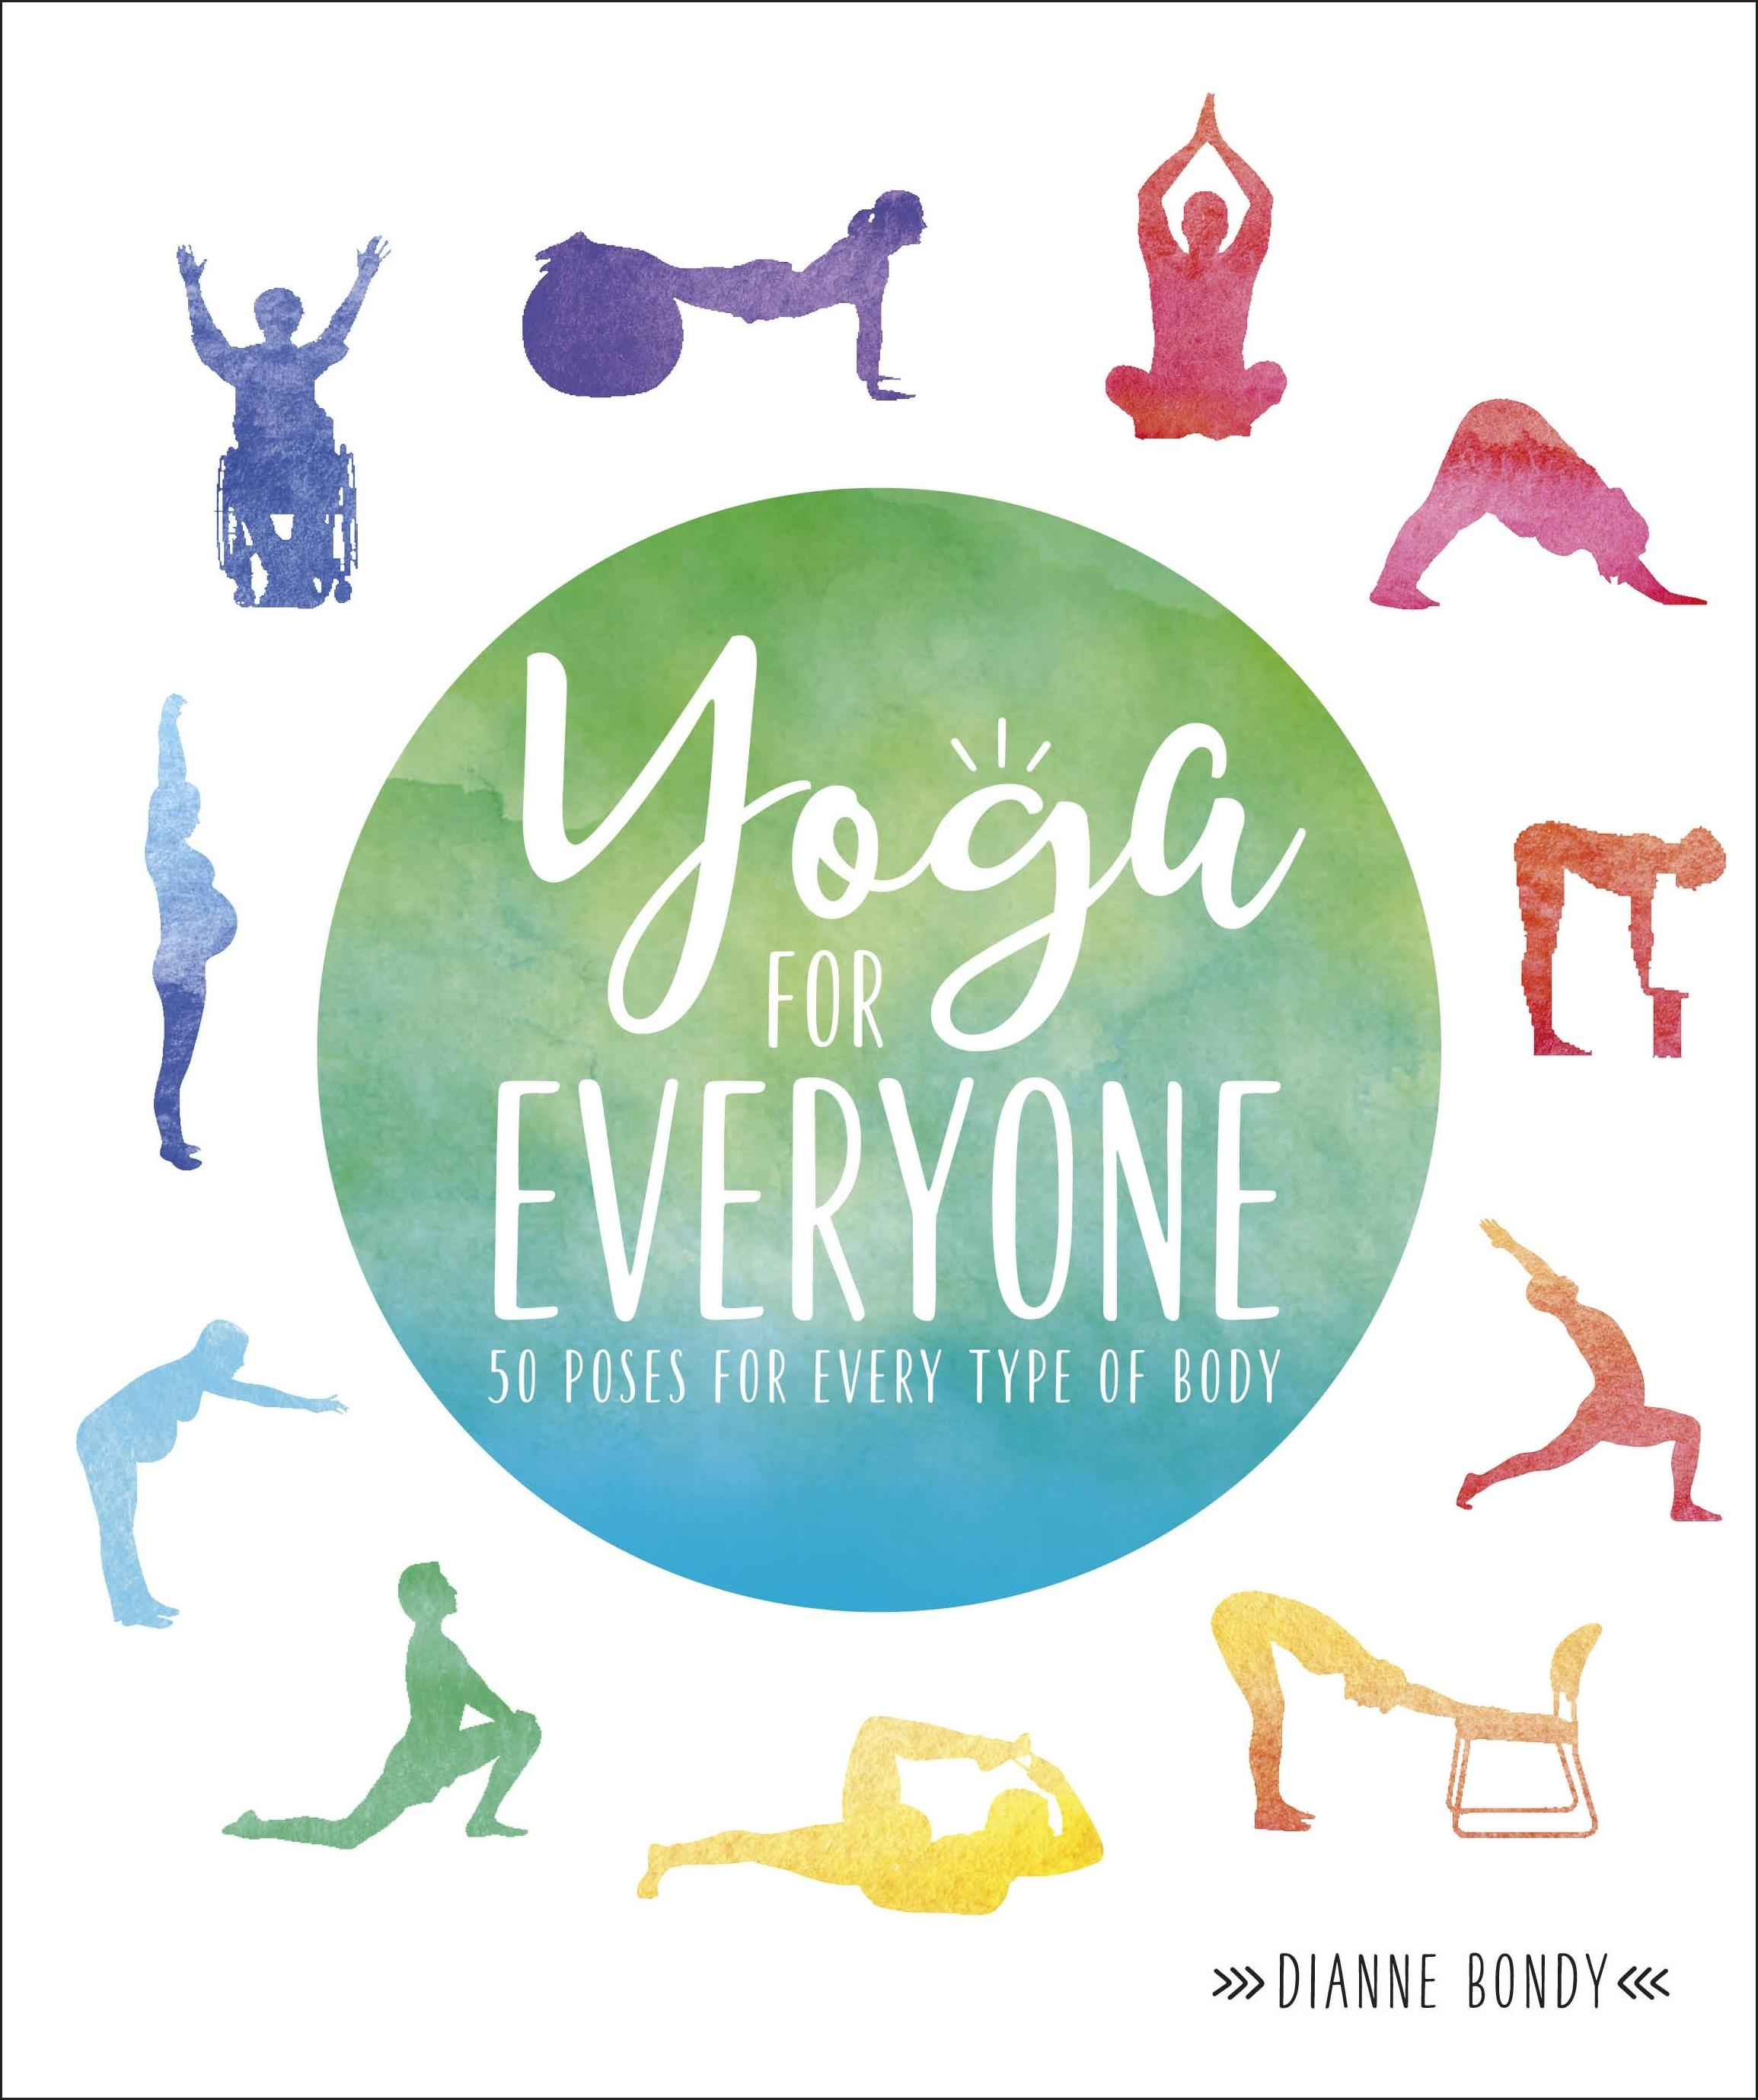 Yoga for Everyone: 50 Poses For Every Type of Body by Dianne Bondy